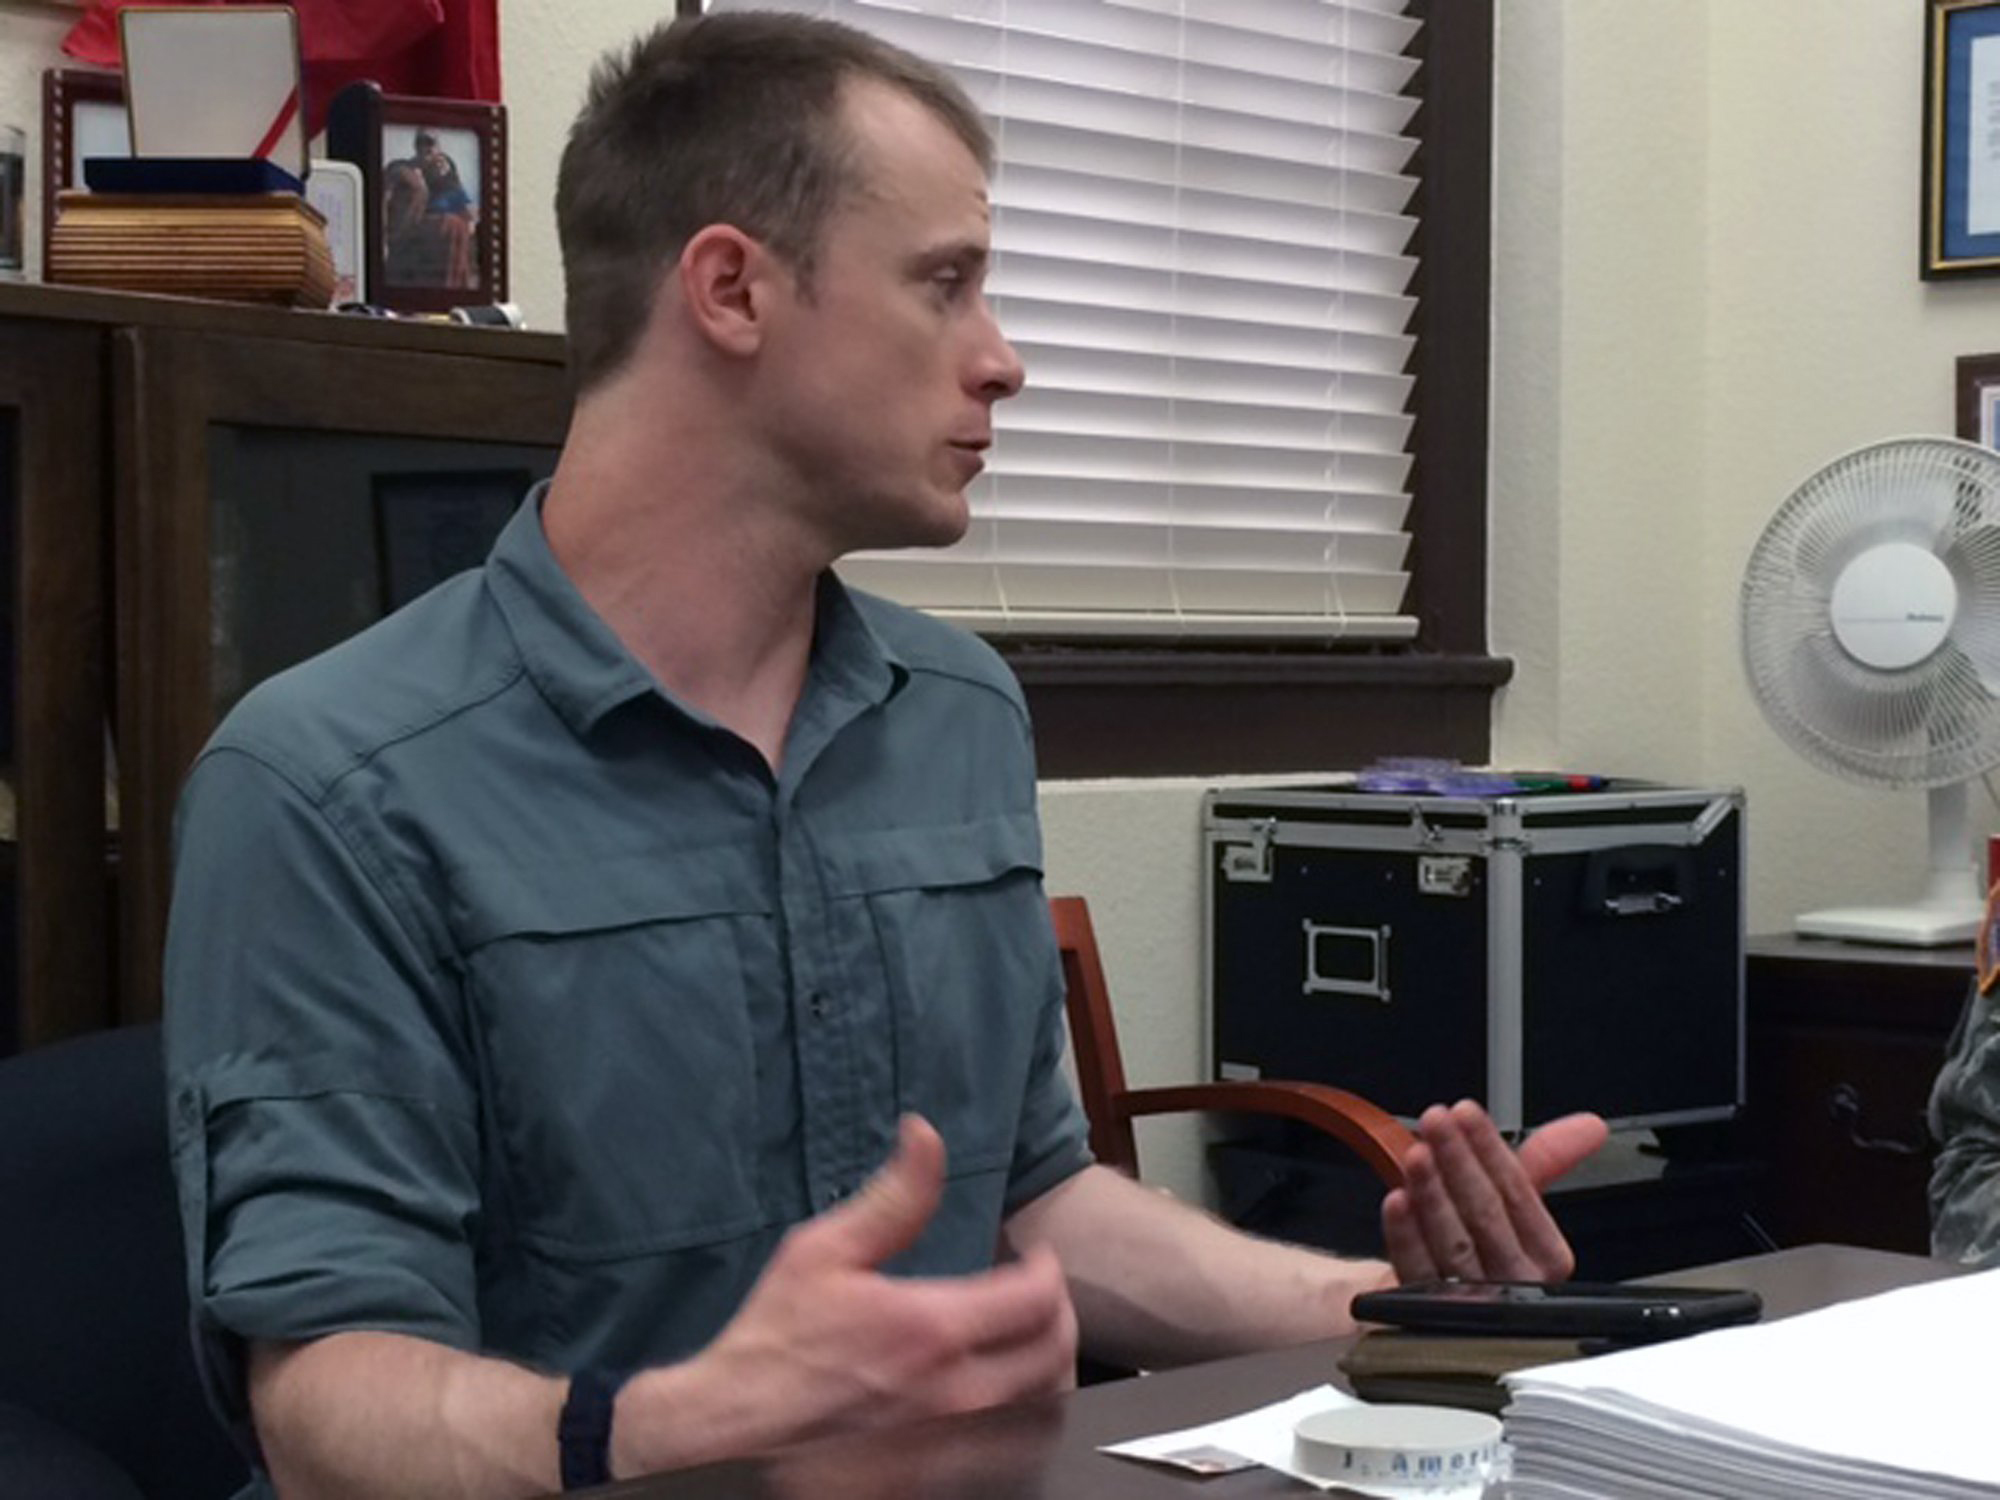 Sgt. Bowe Bergdahl preparing to be interviewed by Army investigators in Aug. 2014.